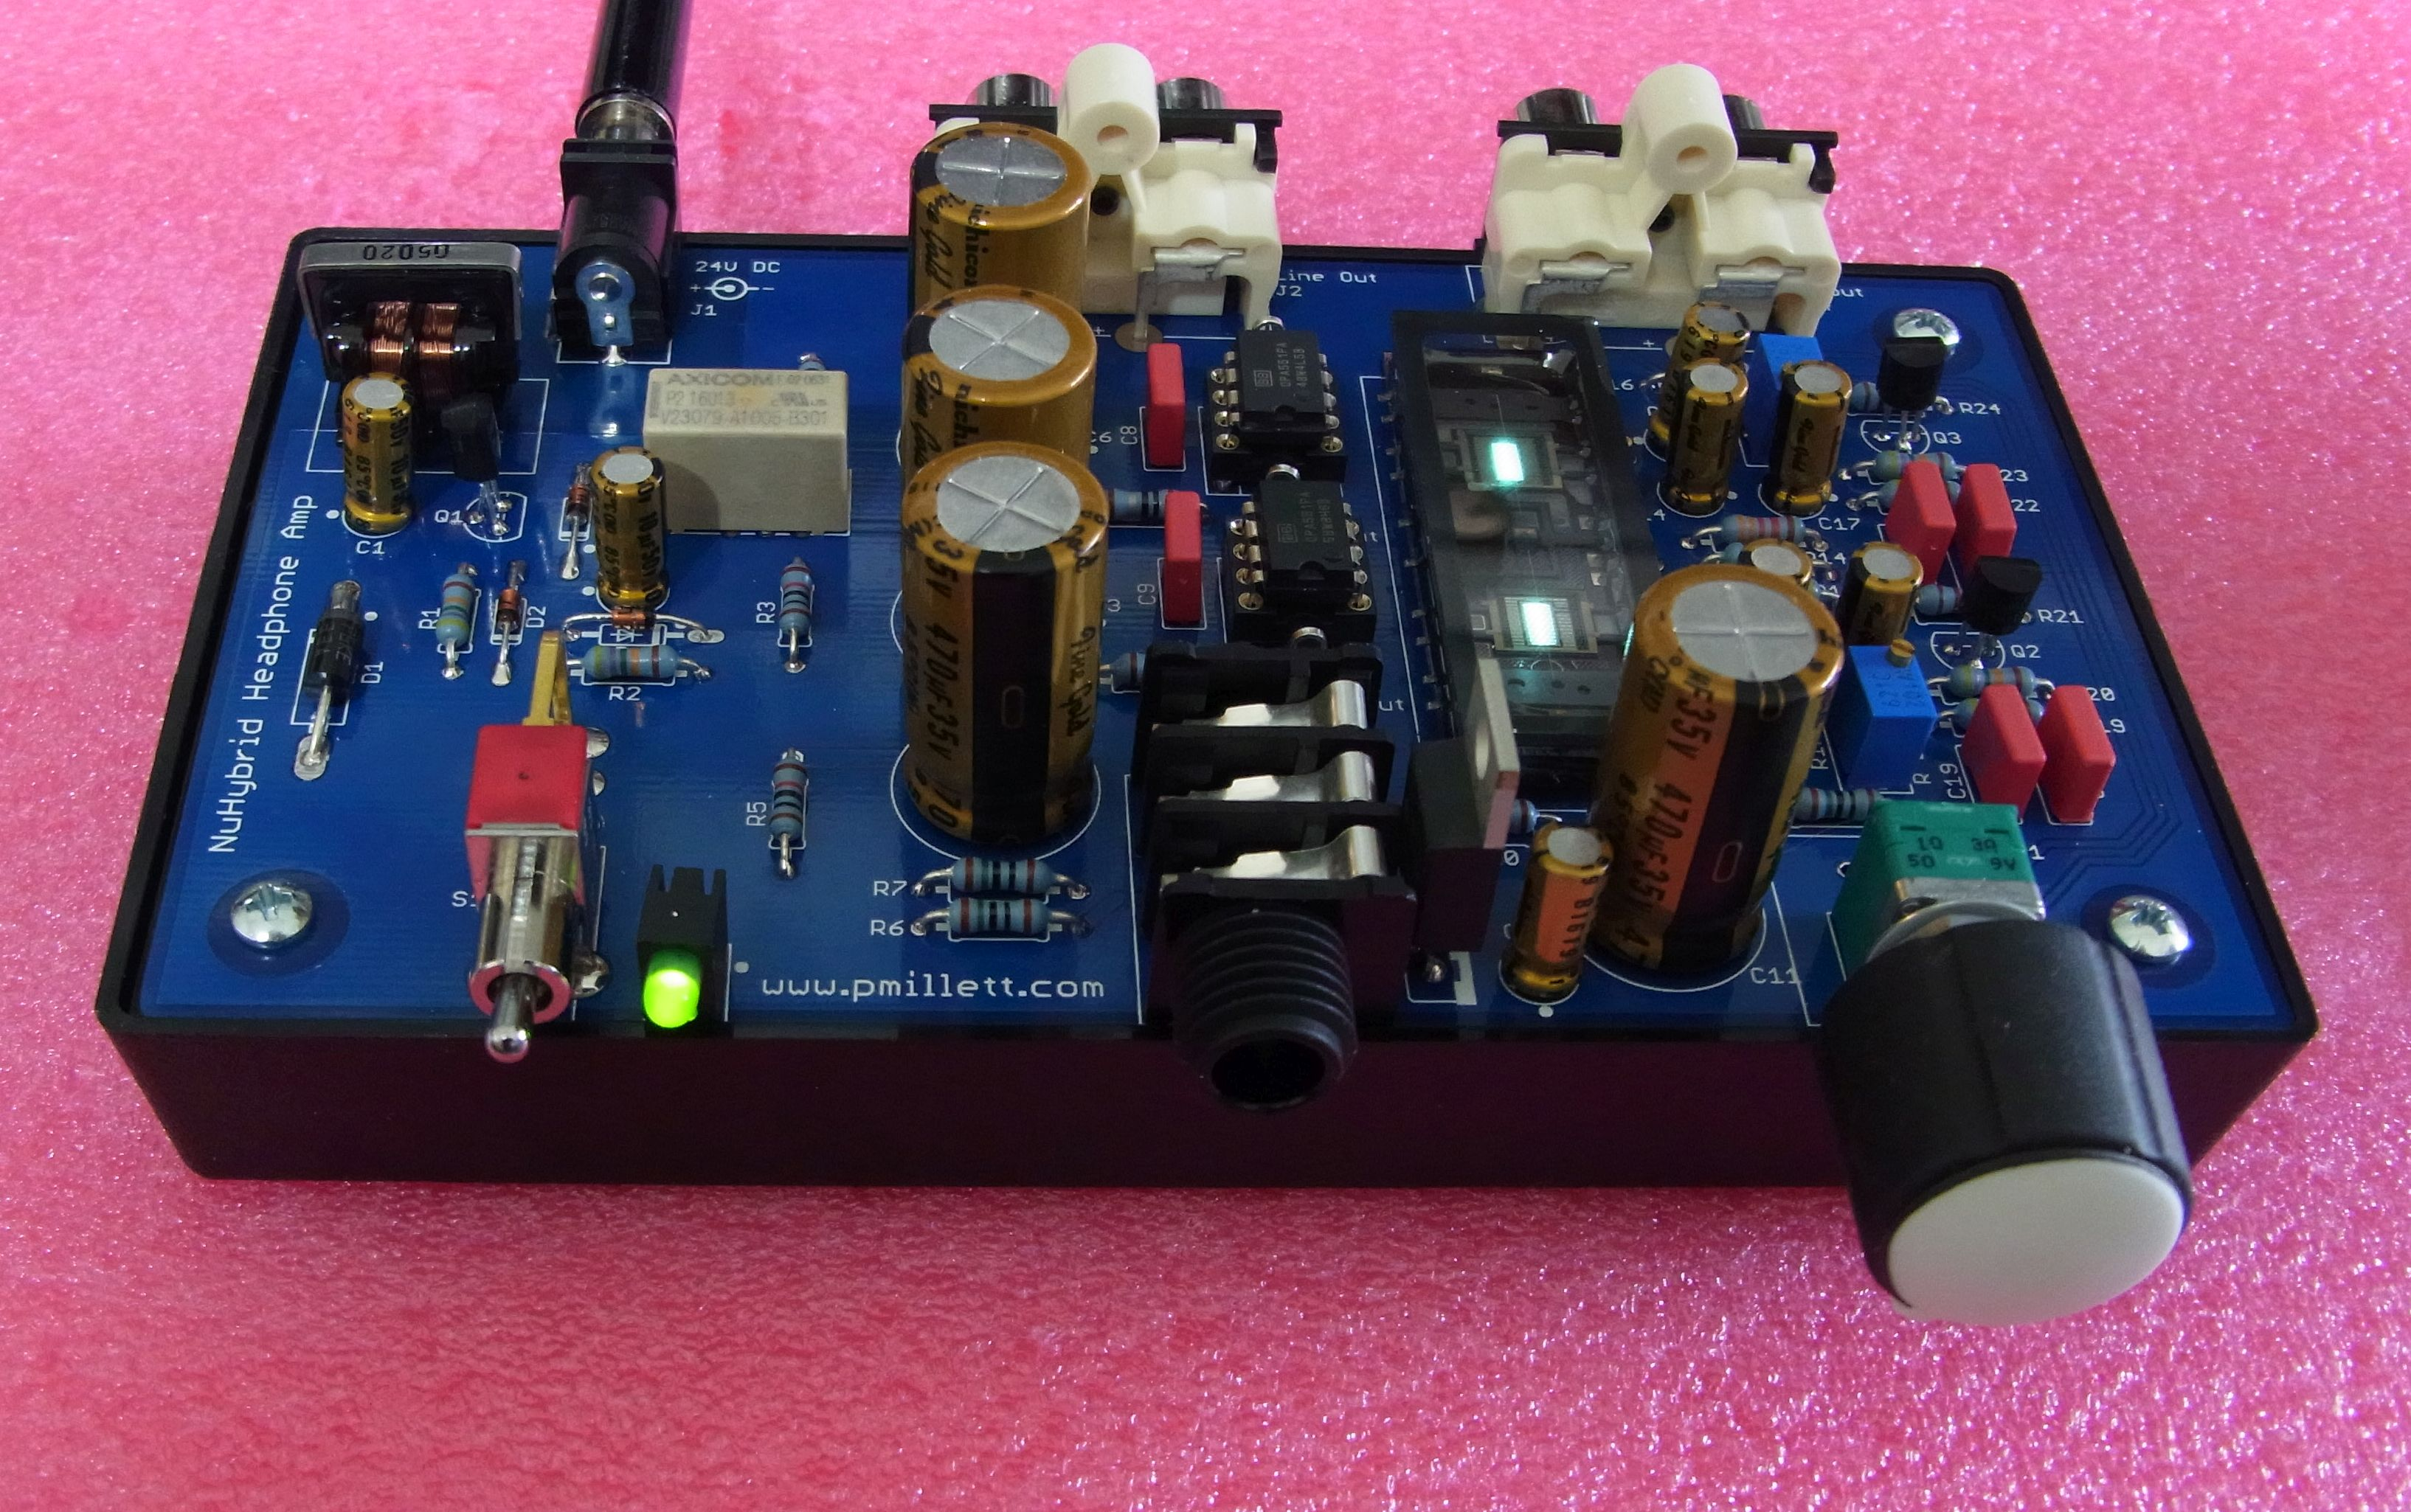 Nuhybrid Headphone Amp Guitar Coupling Capacitor Circuit Like The Original This One Can Be Built As An Open Pcb Mounted Into A Plastic Base With Parts And Glowing Nutube Exposed For All To See